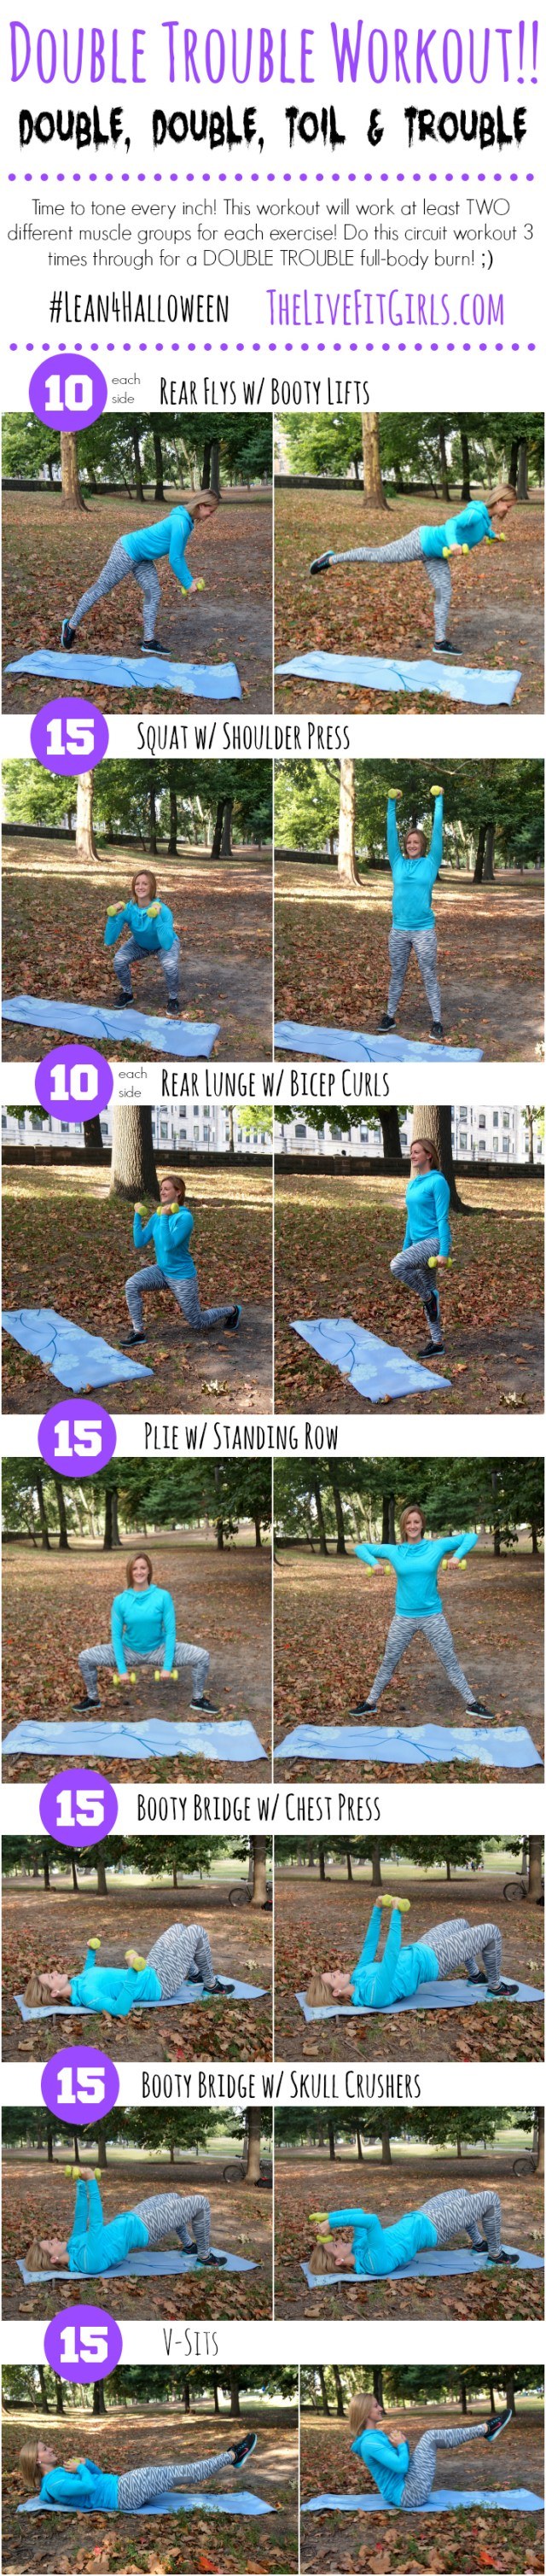 Double Trouble Workout